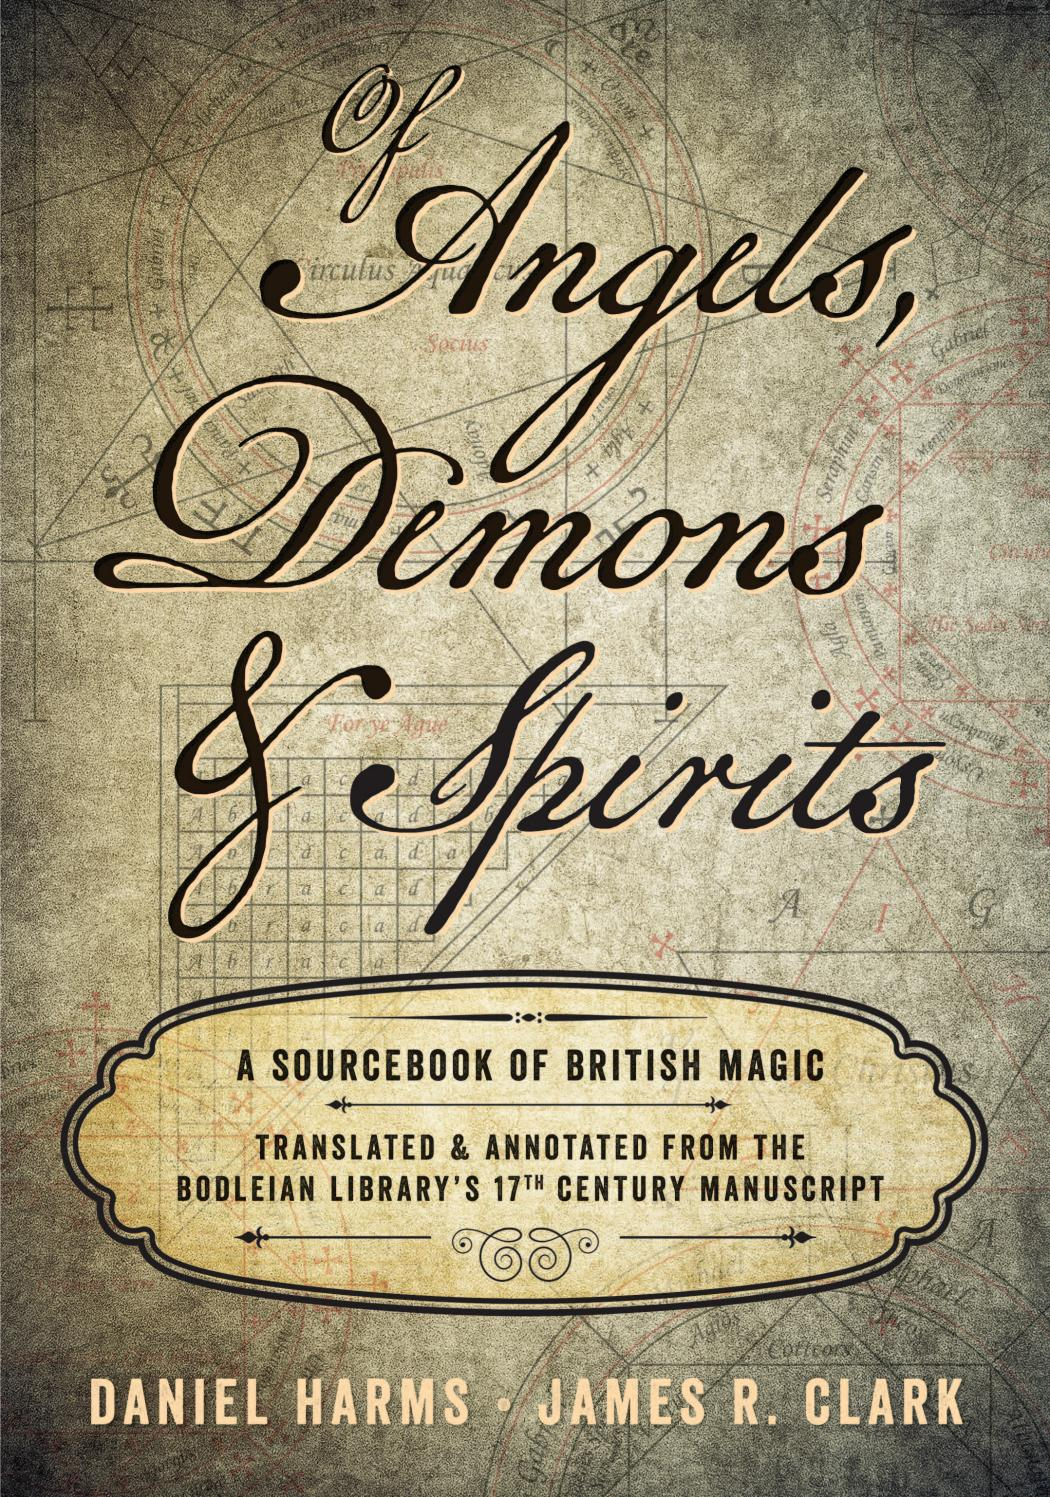 Of Angels, Demons, and Spirits, by Daniel Harms & James R. Clark ...